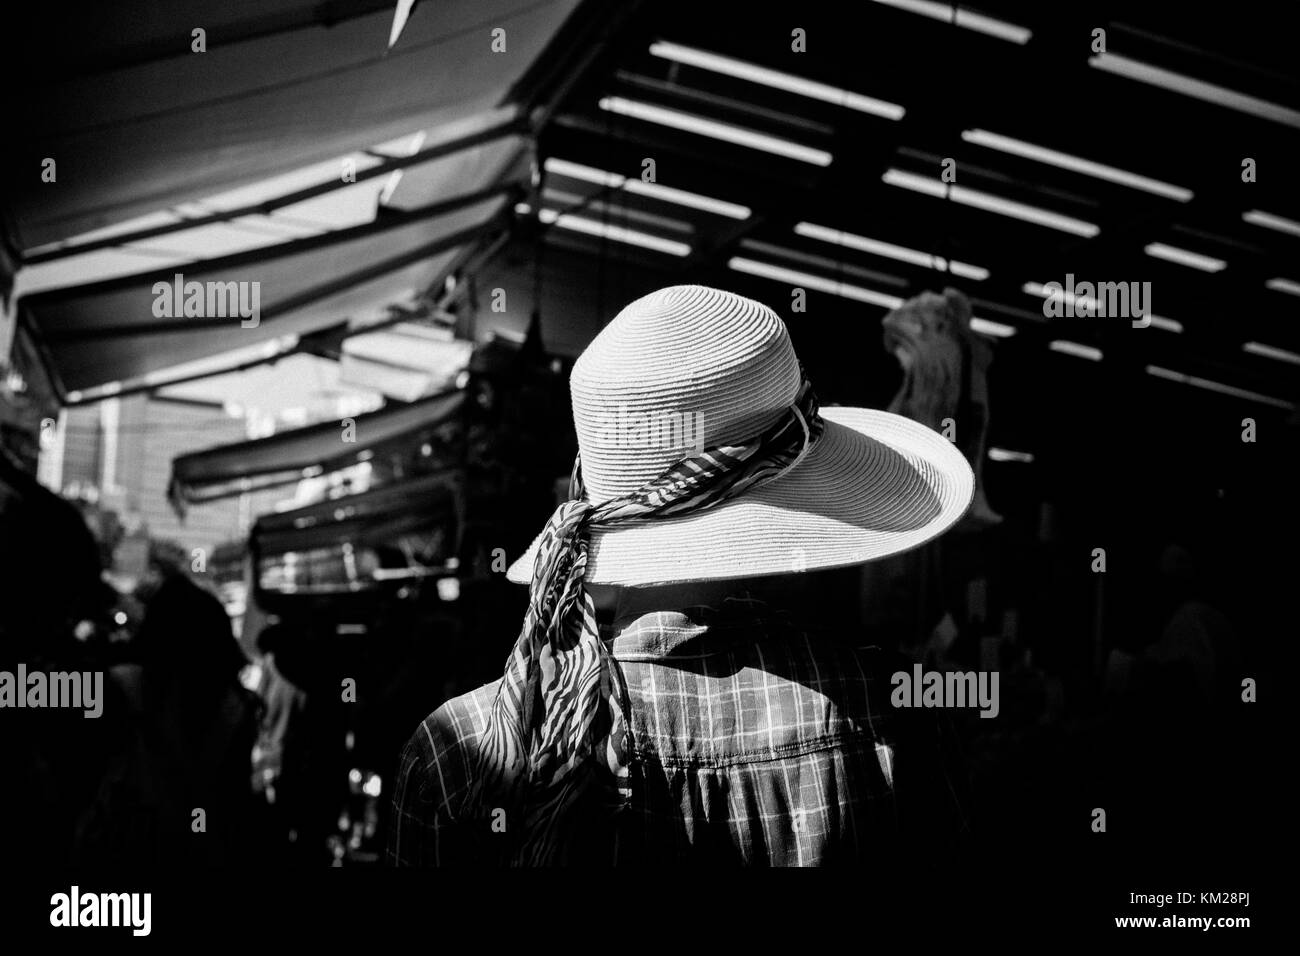 Shopping at the Carmel Market, Tel Aviv, Israel - Stock Image